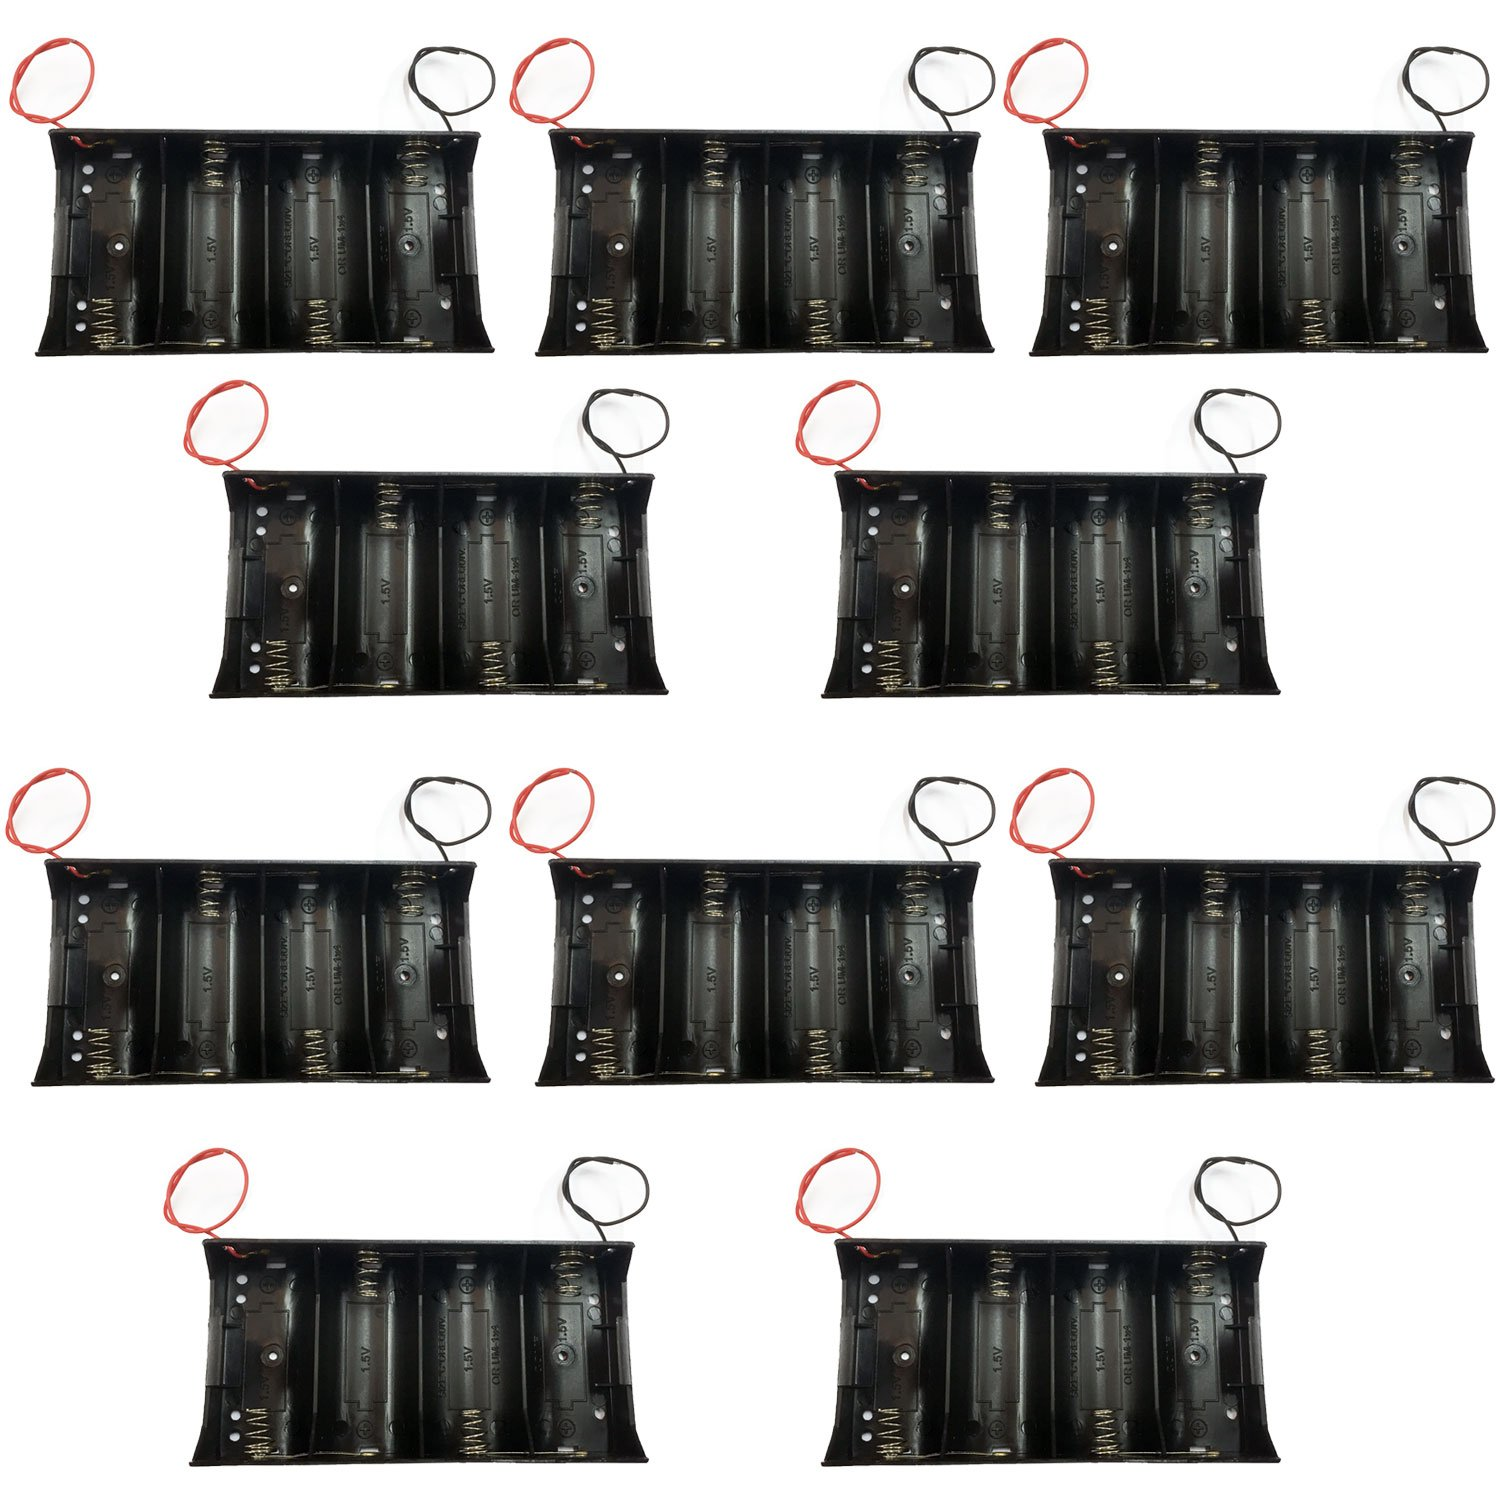 TrendBox Pack of 10pcs For 4xD Battery 1.5Vx4 6V Black Plastic Storage Case Holder Clip Type with 6'' Two Wire 22AWG Spring Lead Flat Tip Container DIY